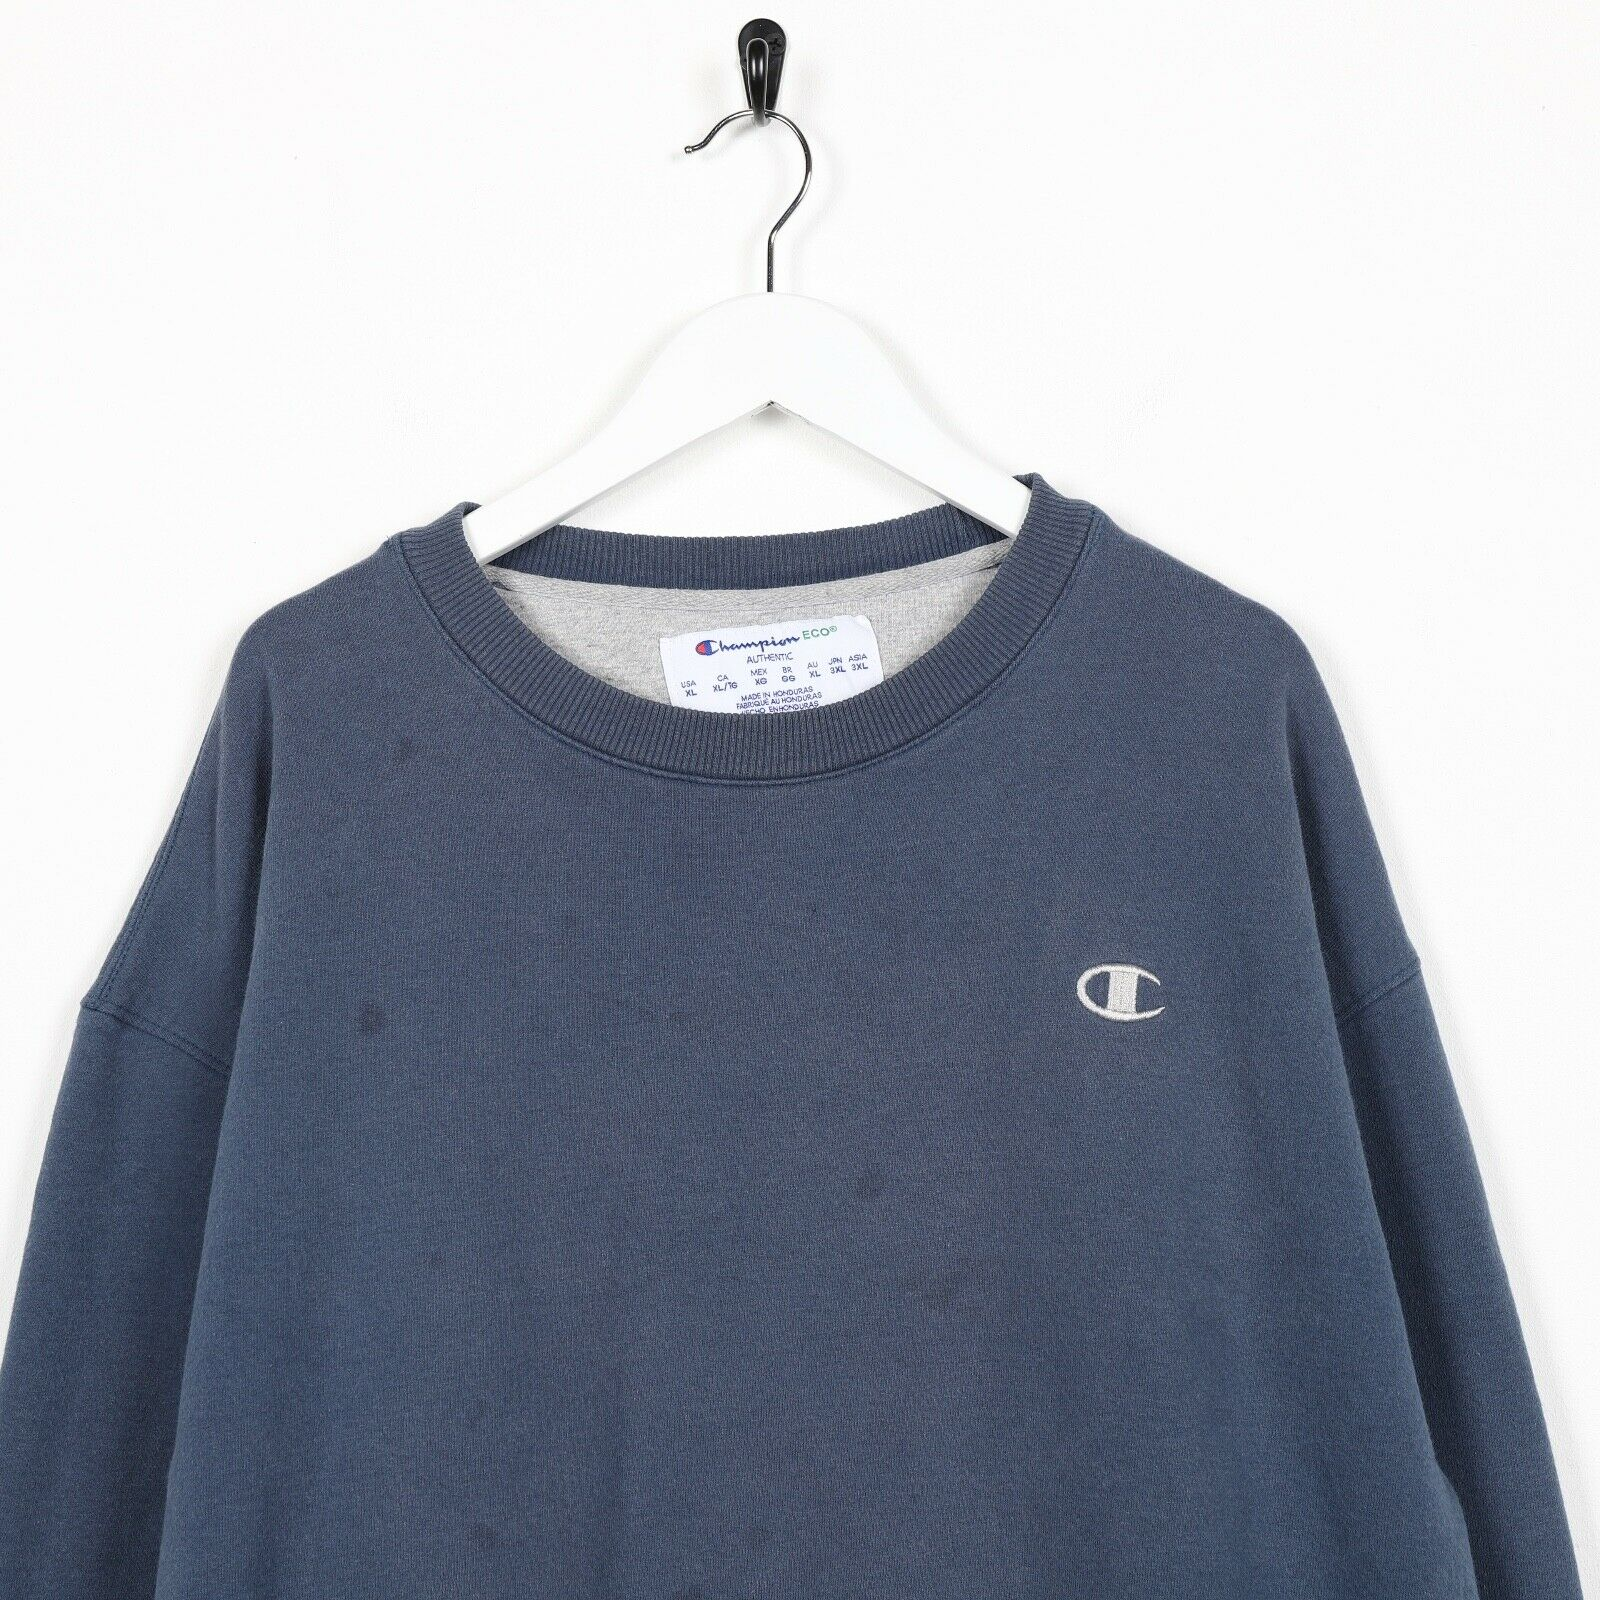 Vintage CHAMPION Small Logo Sweatshirt Jumper Navy Blue | XL